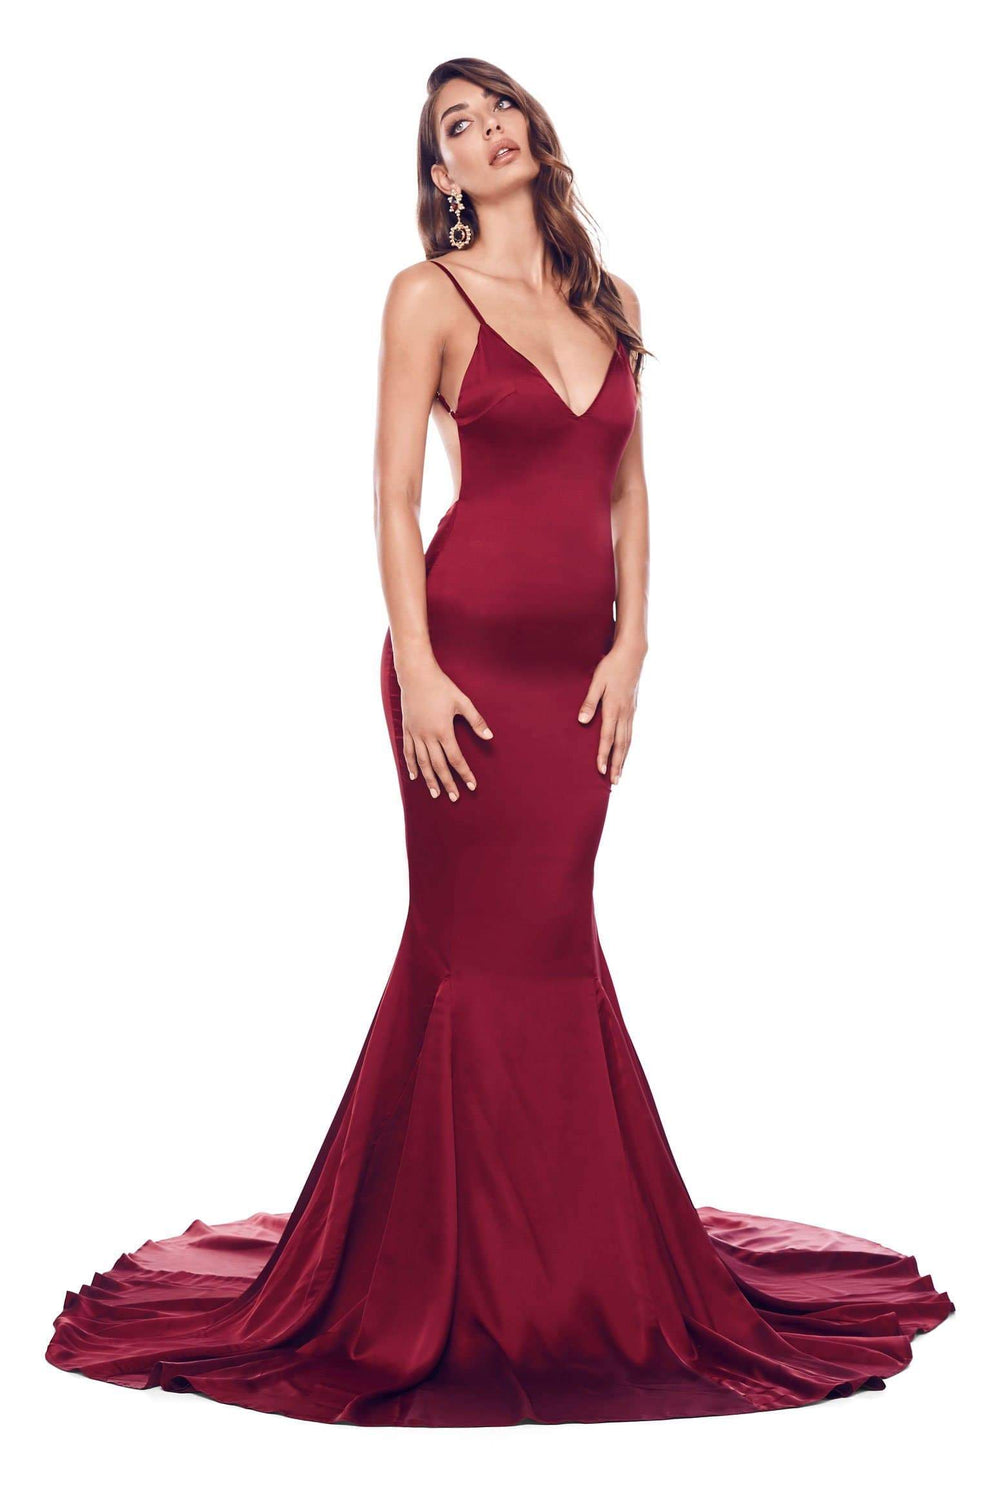 Tamara - Burgundy Satin Gown with V-Neck, Low Back & Mermaid Train